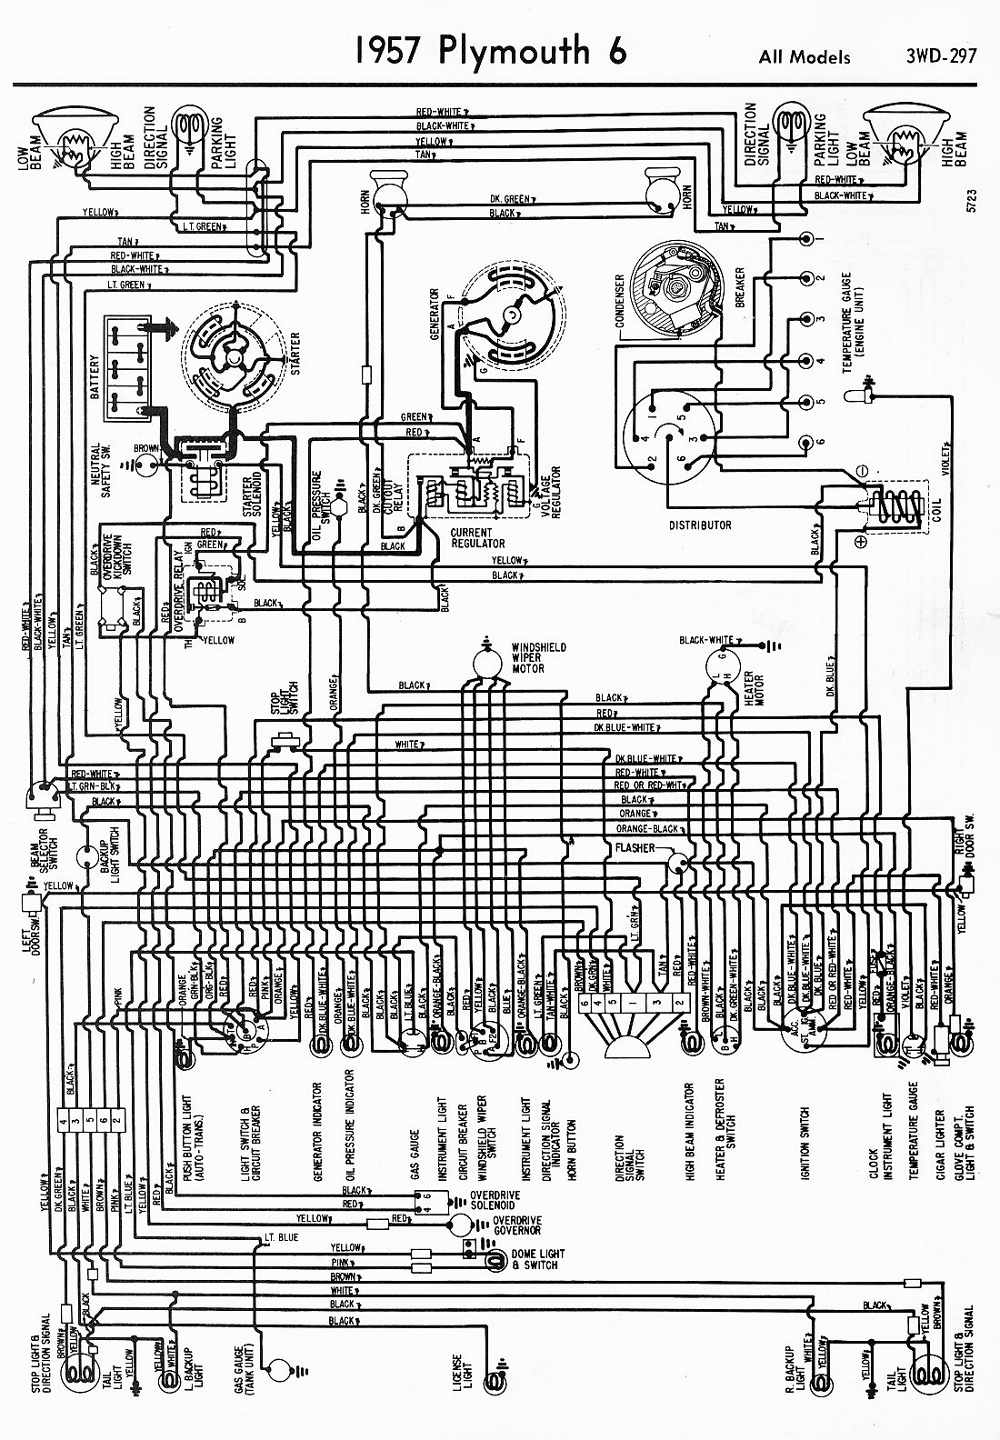 wiring diagrams 911 1957 plymouth 6 all models wiring diagram rh wiringdiagrams911 blogspot com